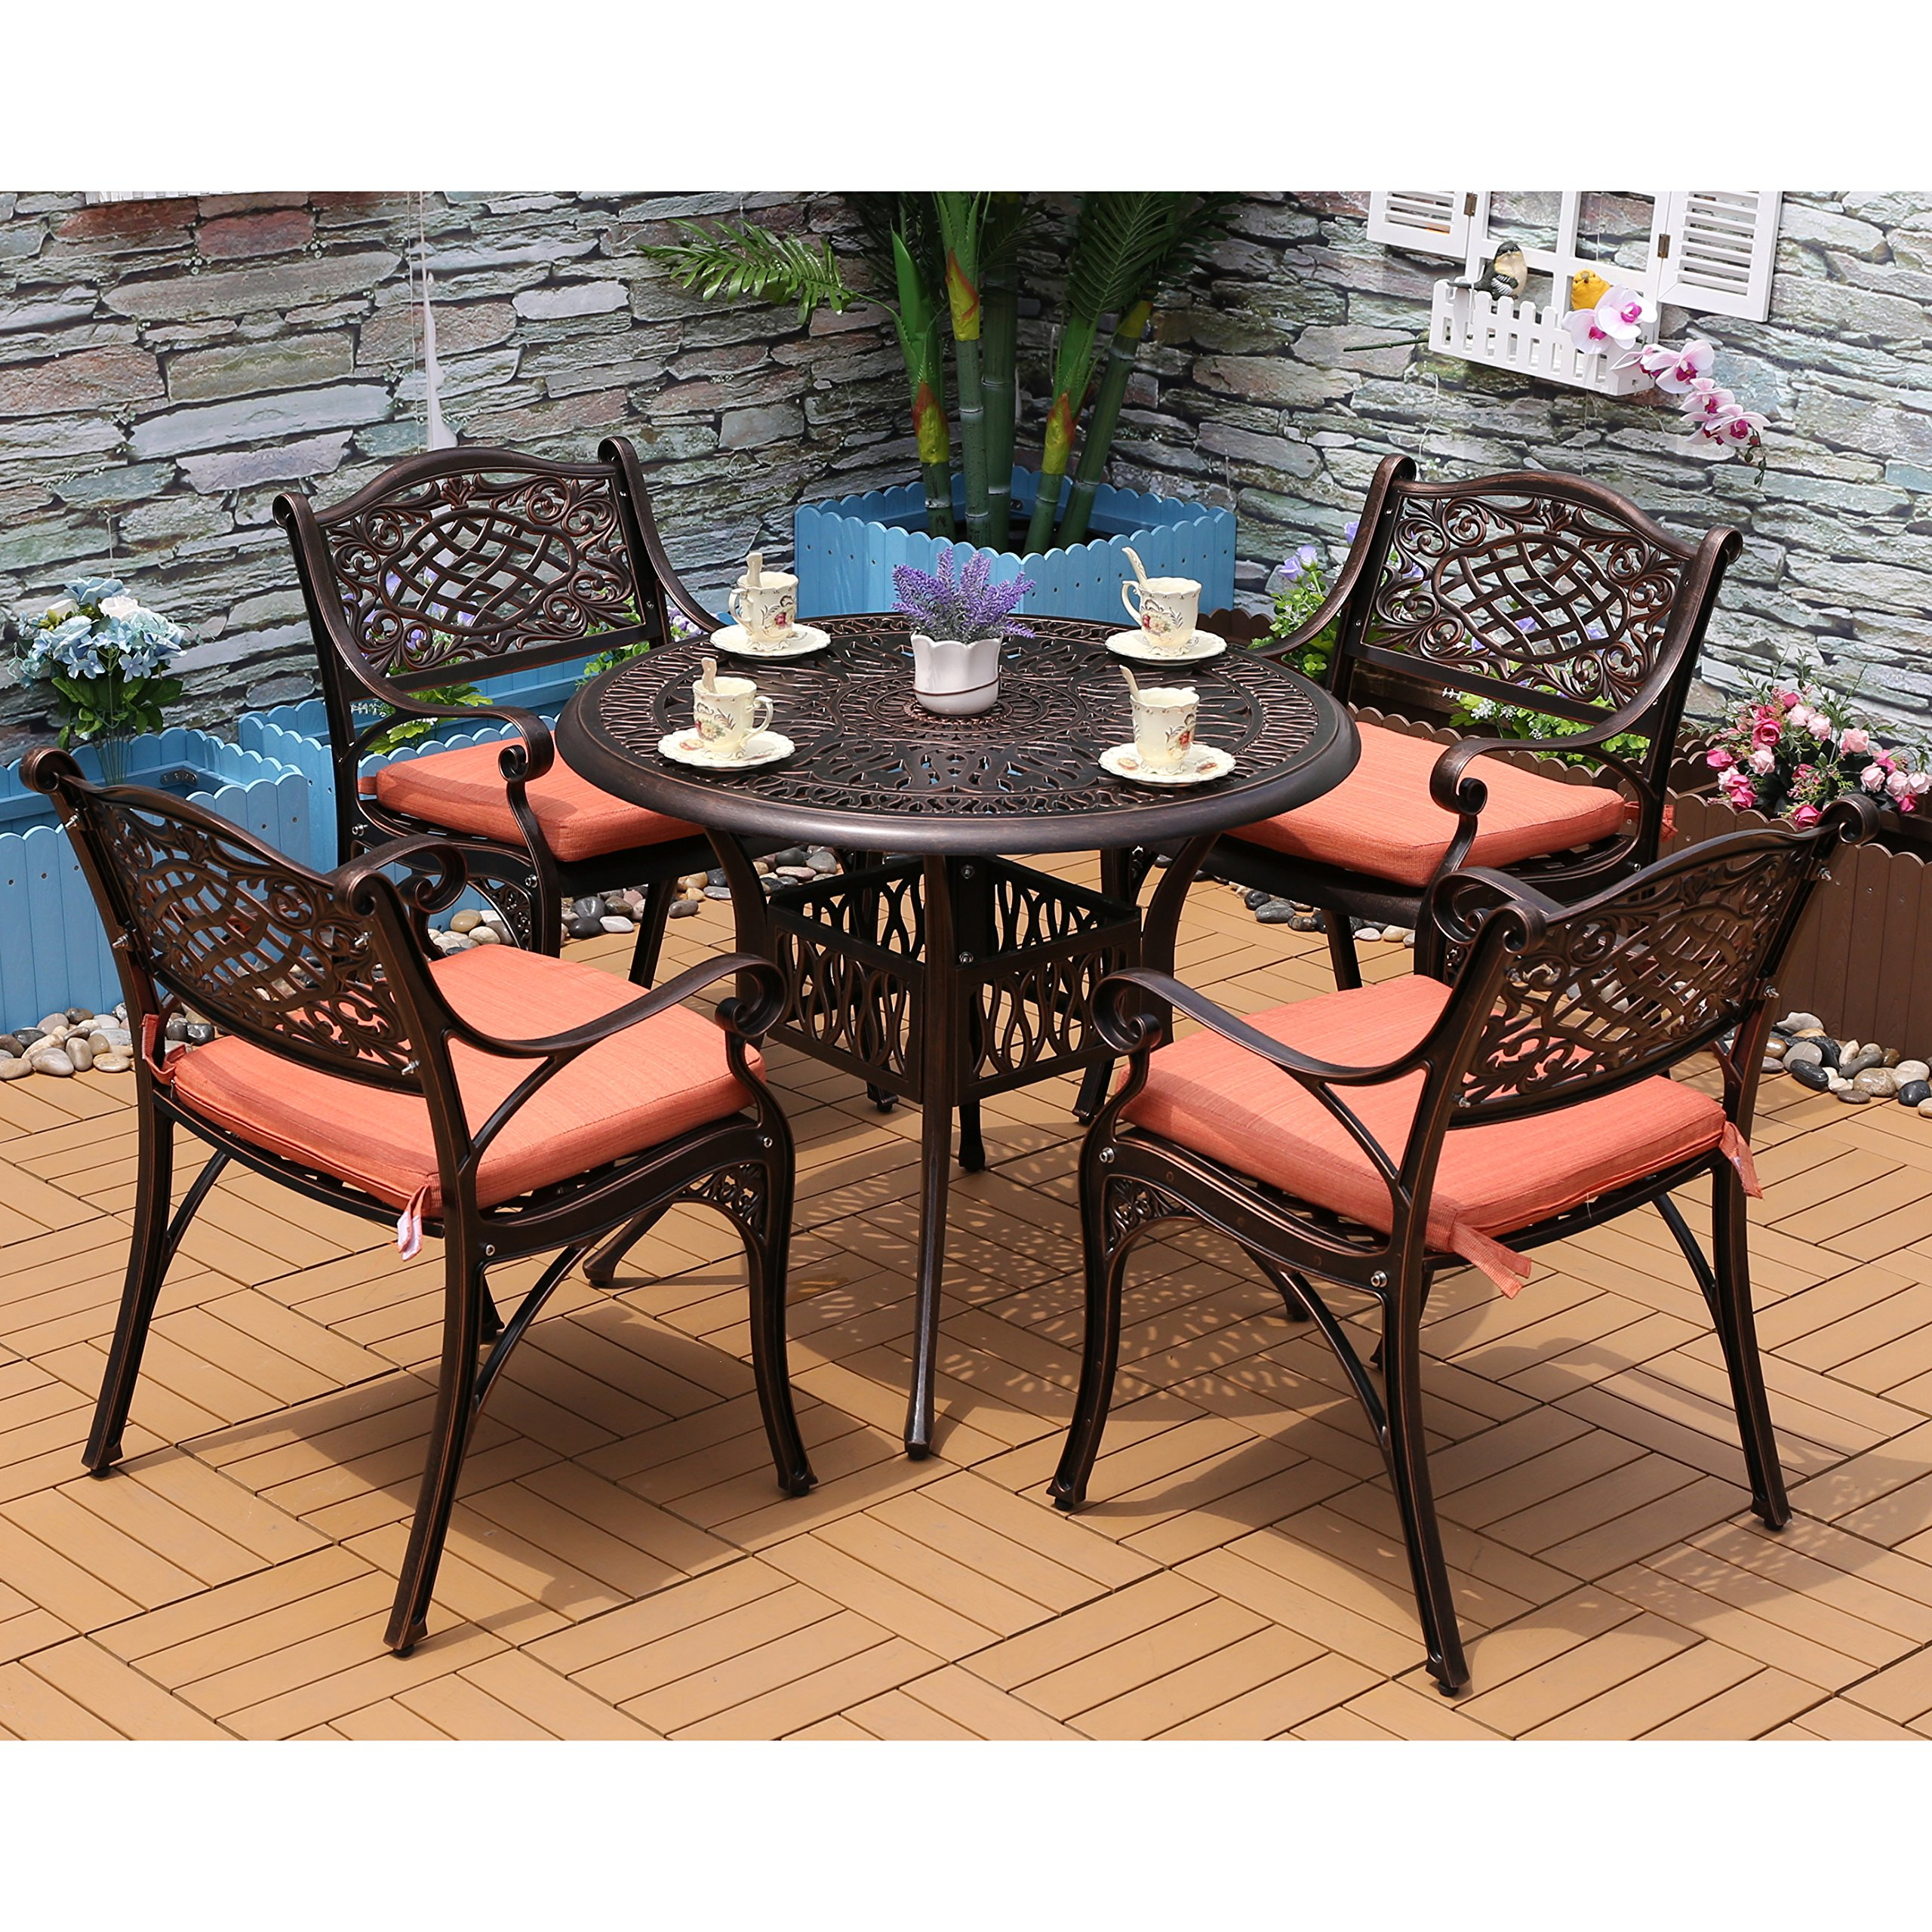 Patio Furniture Table And Chairs Yongcun Outdoor Patio Furniture Cast Aluminum Dining Set Patio Dining Table Chair Color Is Antique Bronze One 35 4